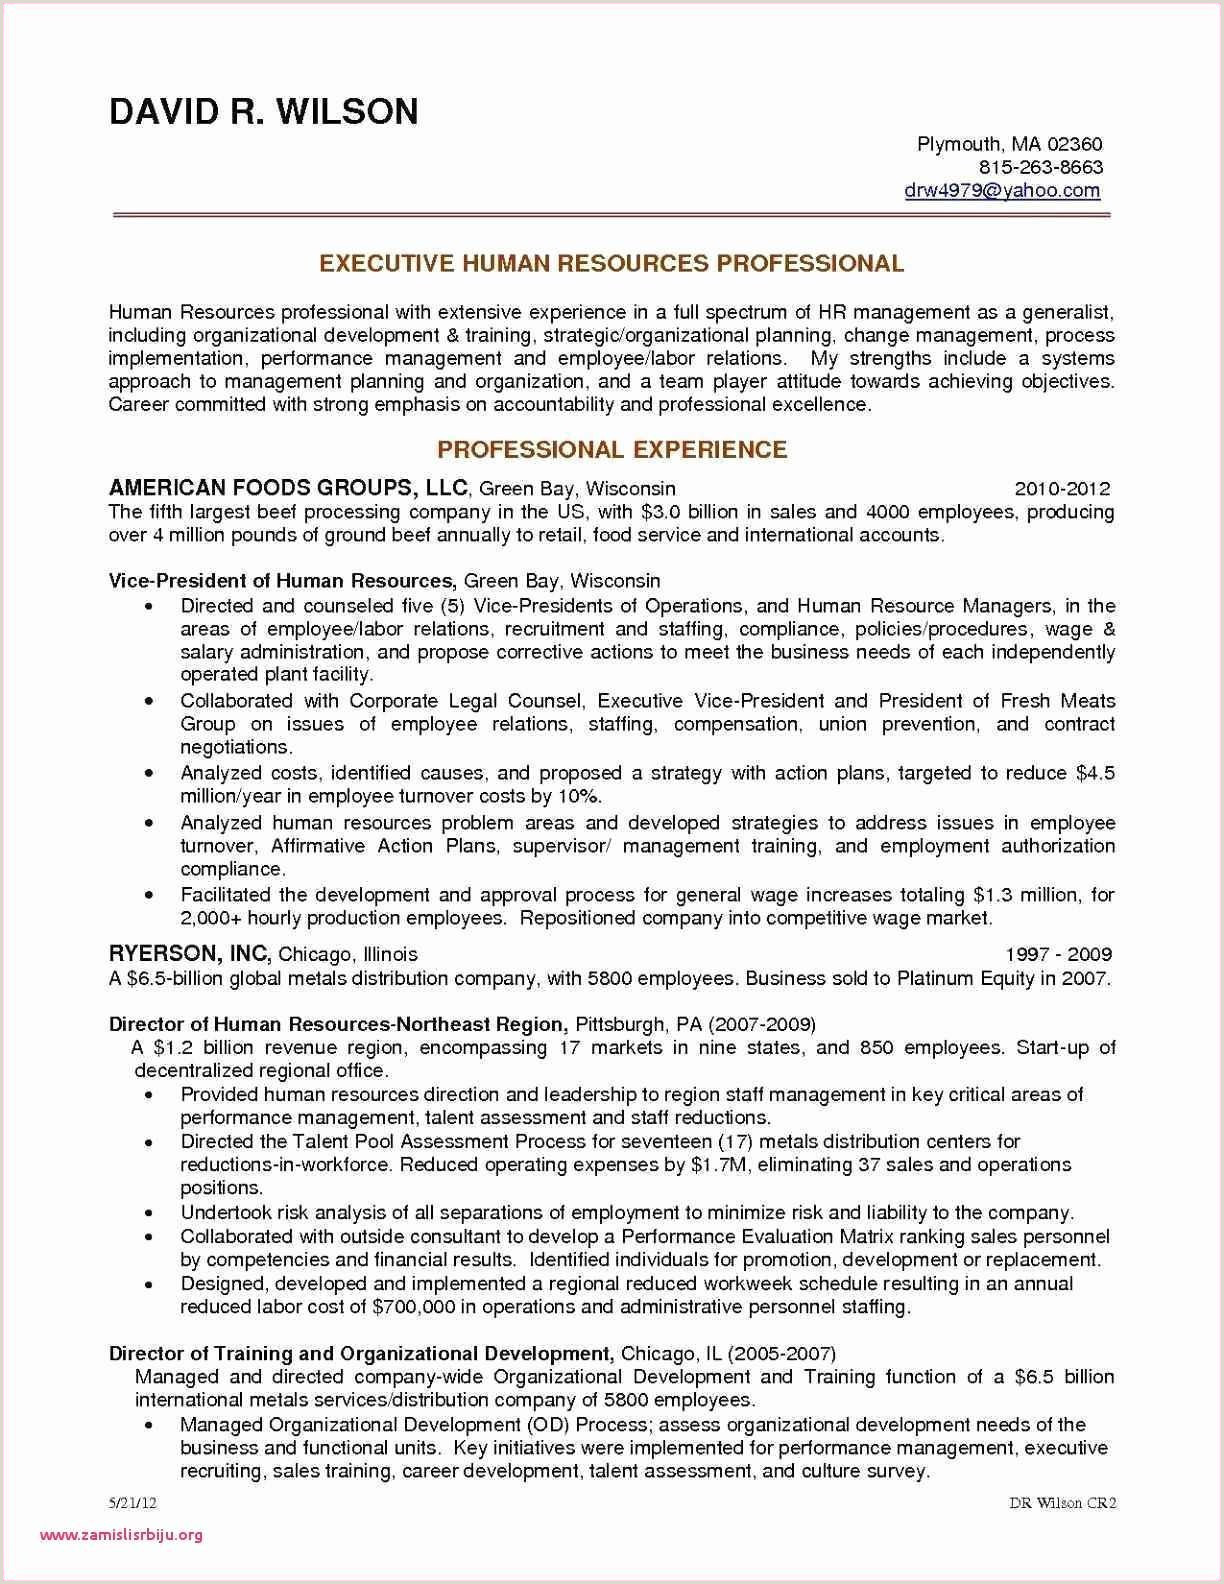 Cover Letter for Lab assistant Cover Letter for Research assistant with No Experience